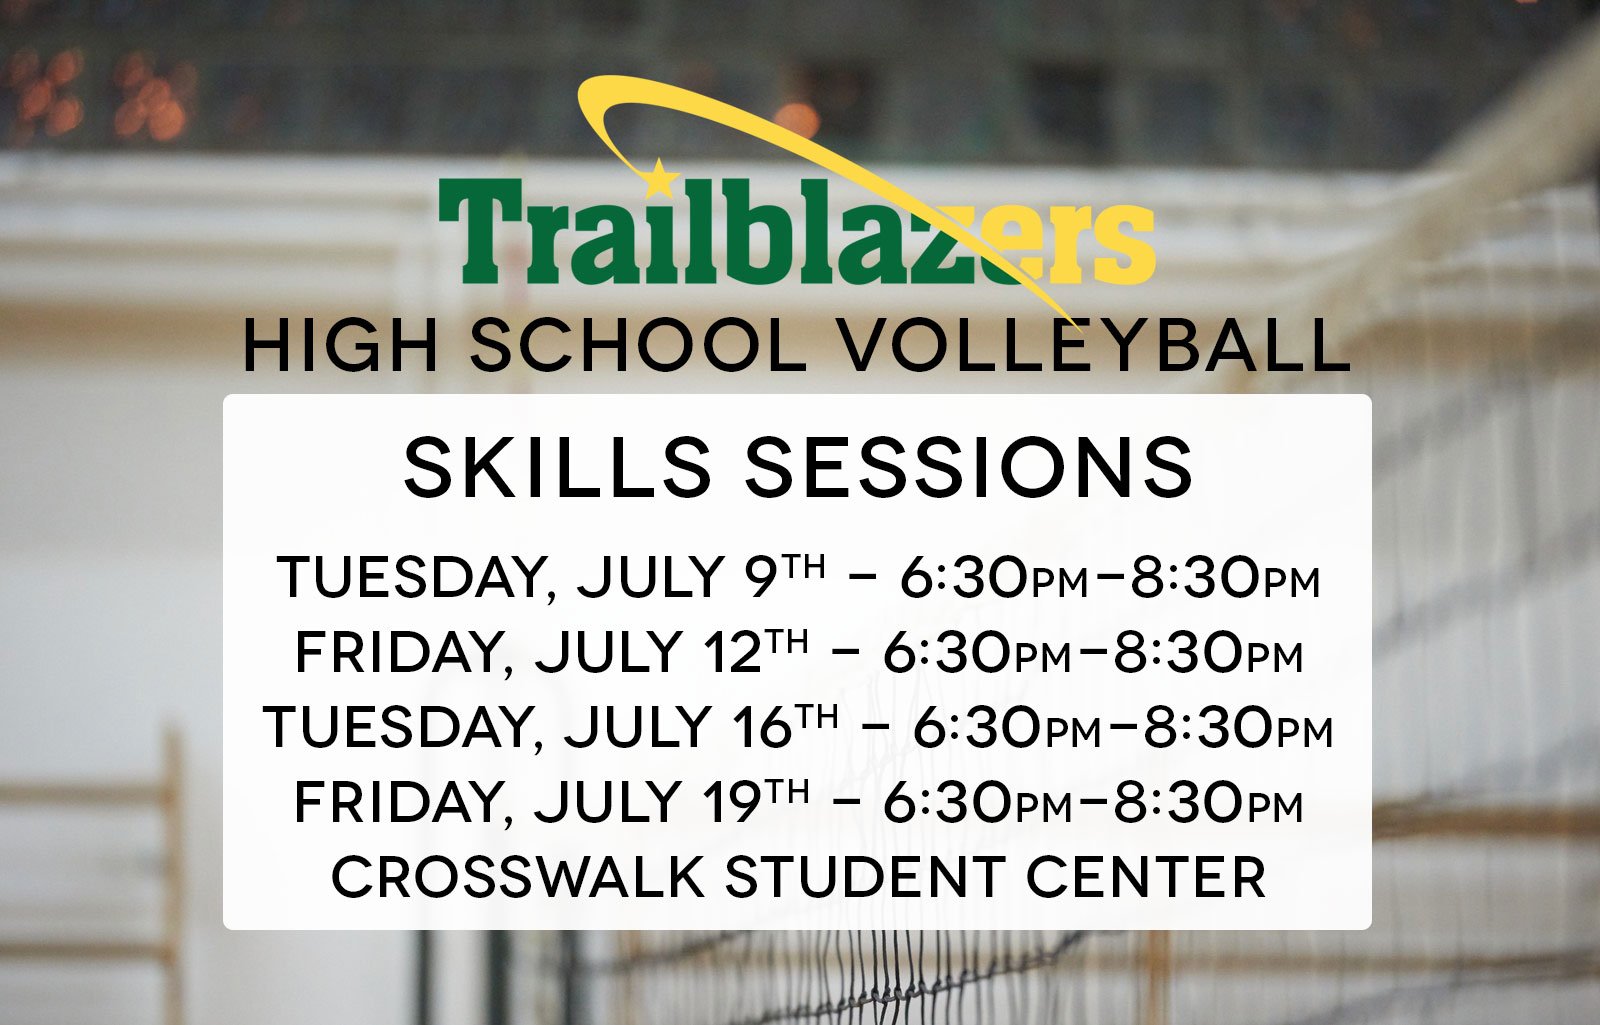 High School Volleyball Skills Sessions